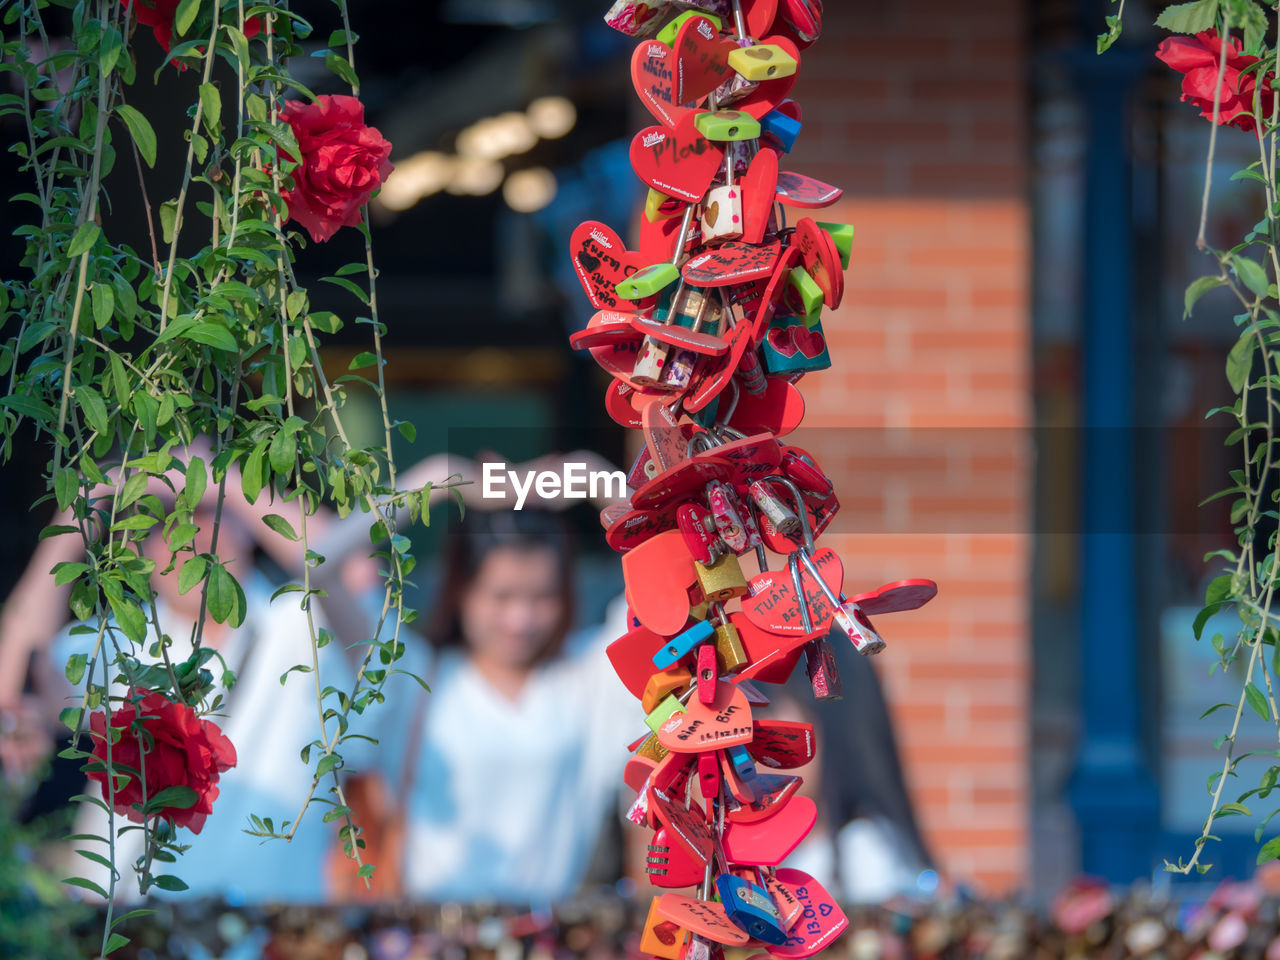 day, focus on foreground, representation, red, decoration, outdoors, childhood, celebration, art and craft, lifestyles, real people, multi colored, festival, men, creativity, people, hanging, chinese new year